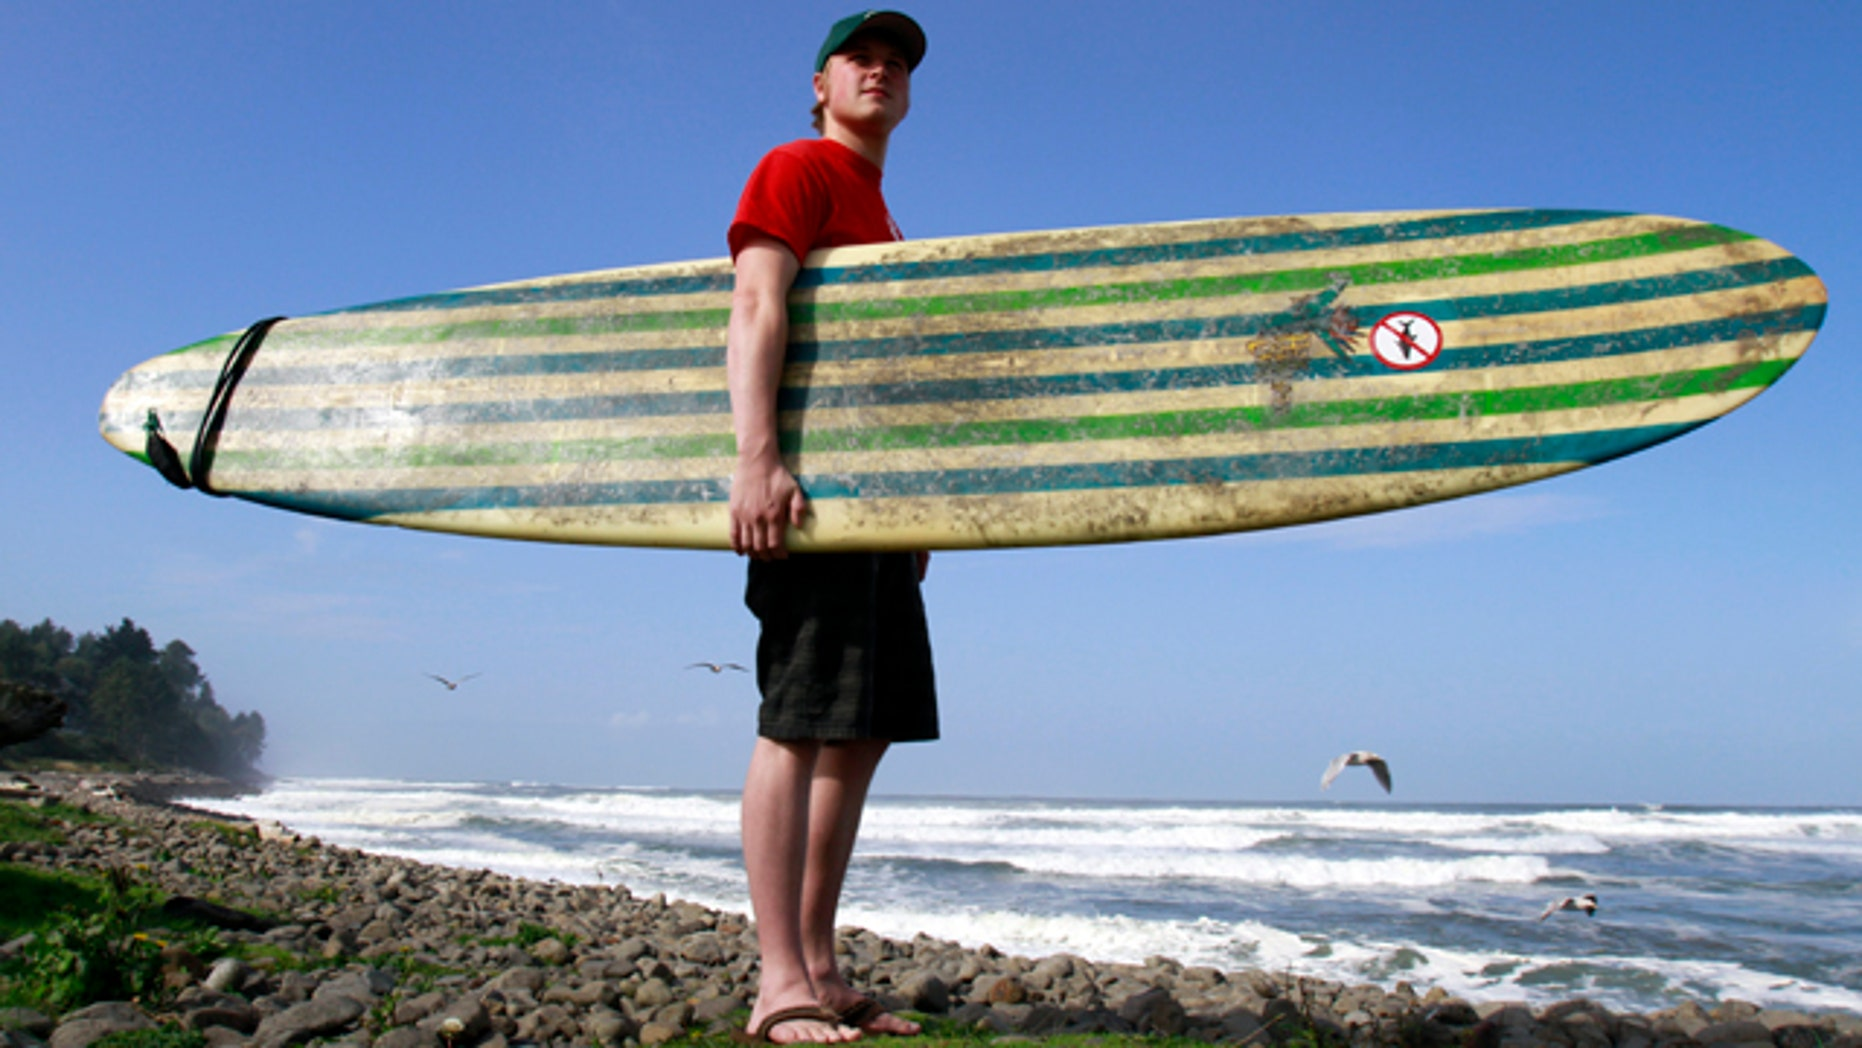 Oct. 12: Surfer Doug Niblack poses for a photo at a popular surfing site in Seaside, Ore.